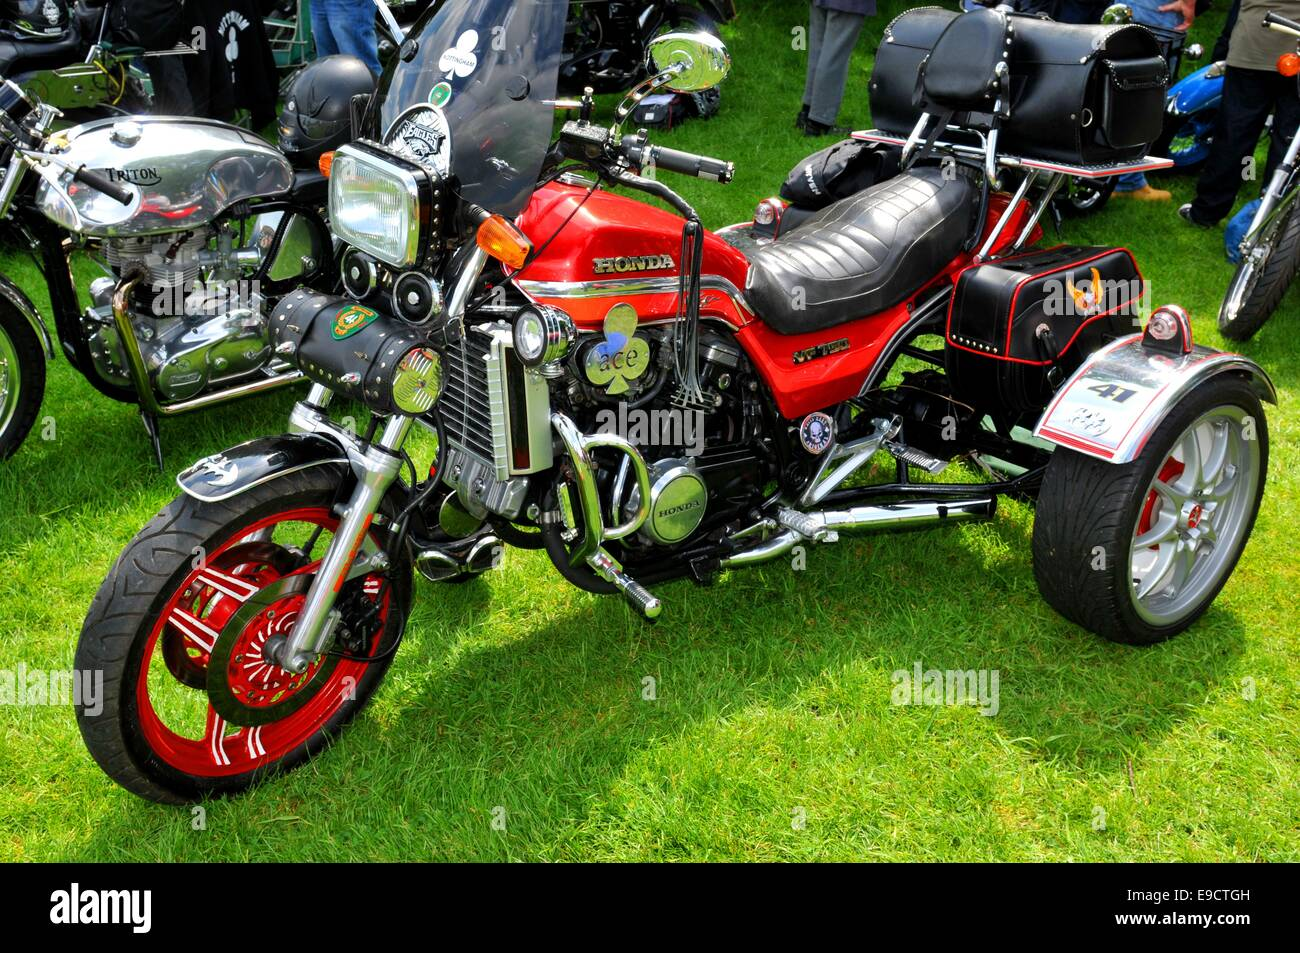 Old Red Motorcycle Engine Details Stock Photos Old Red